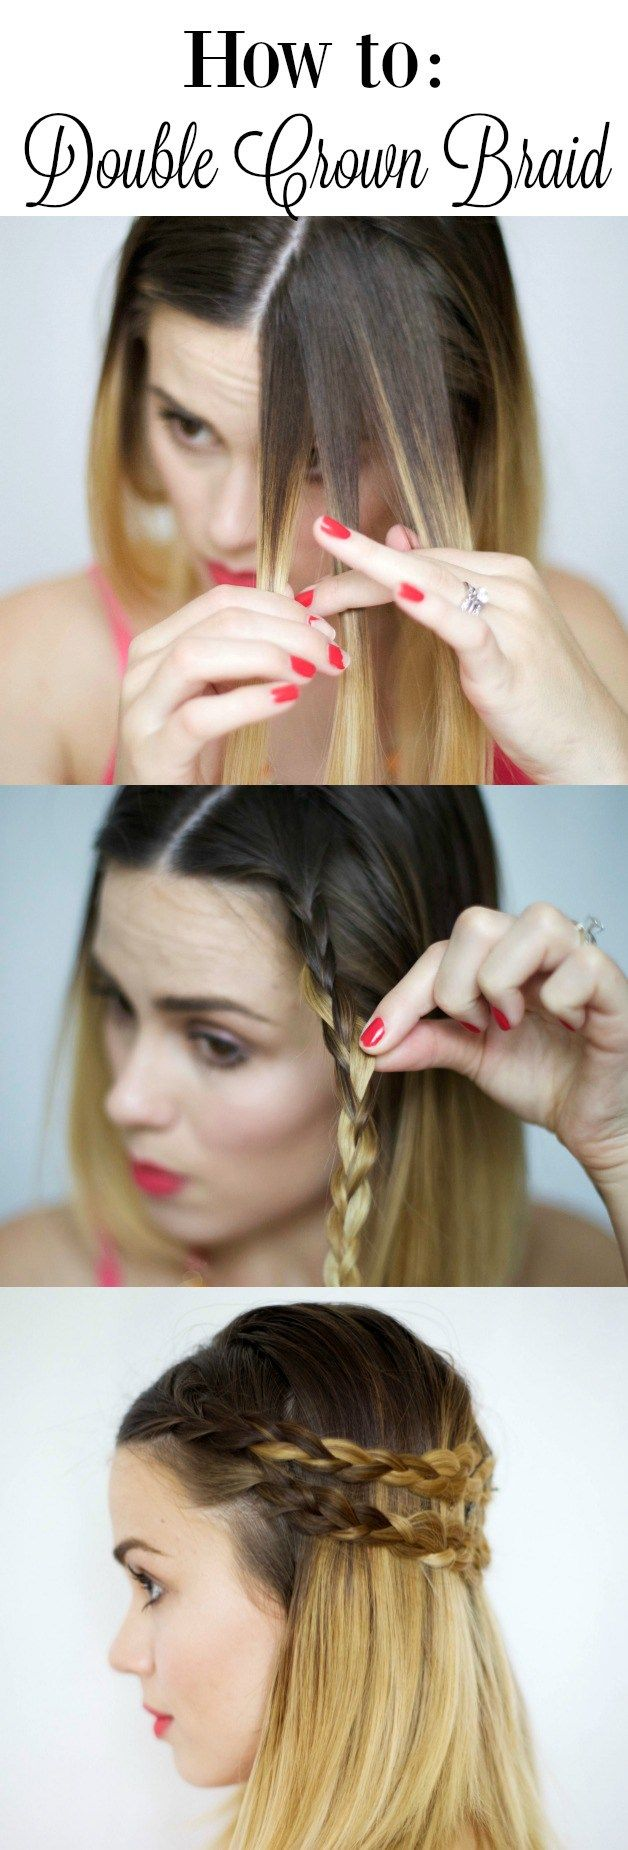 How to: Double Crown Braid • How to braid a double crown for short hair | Uptown with Elly Brown